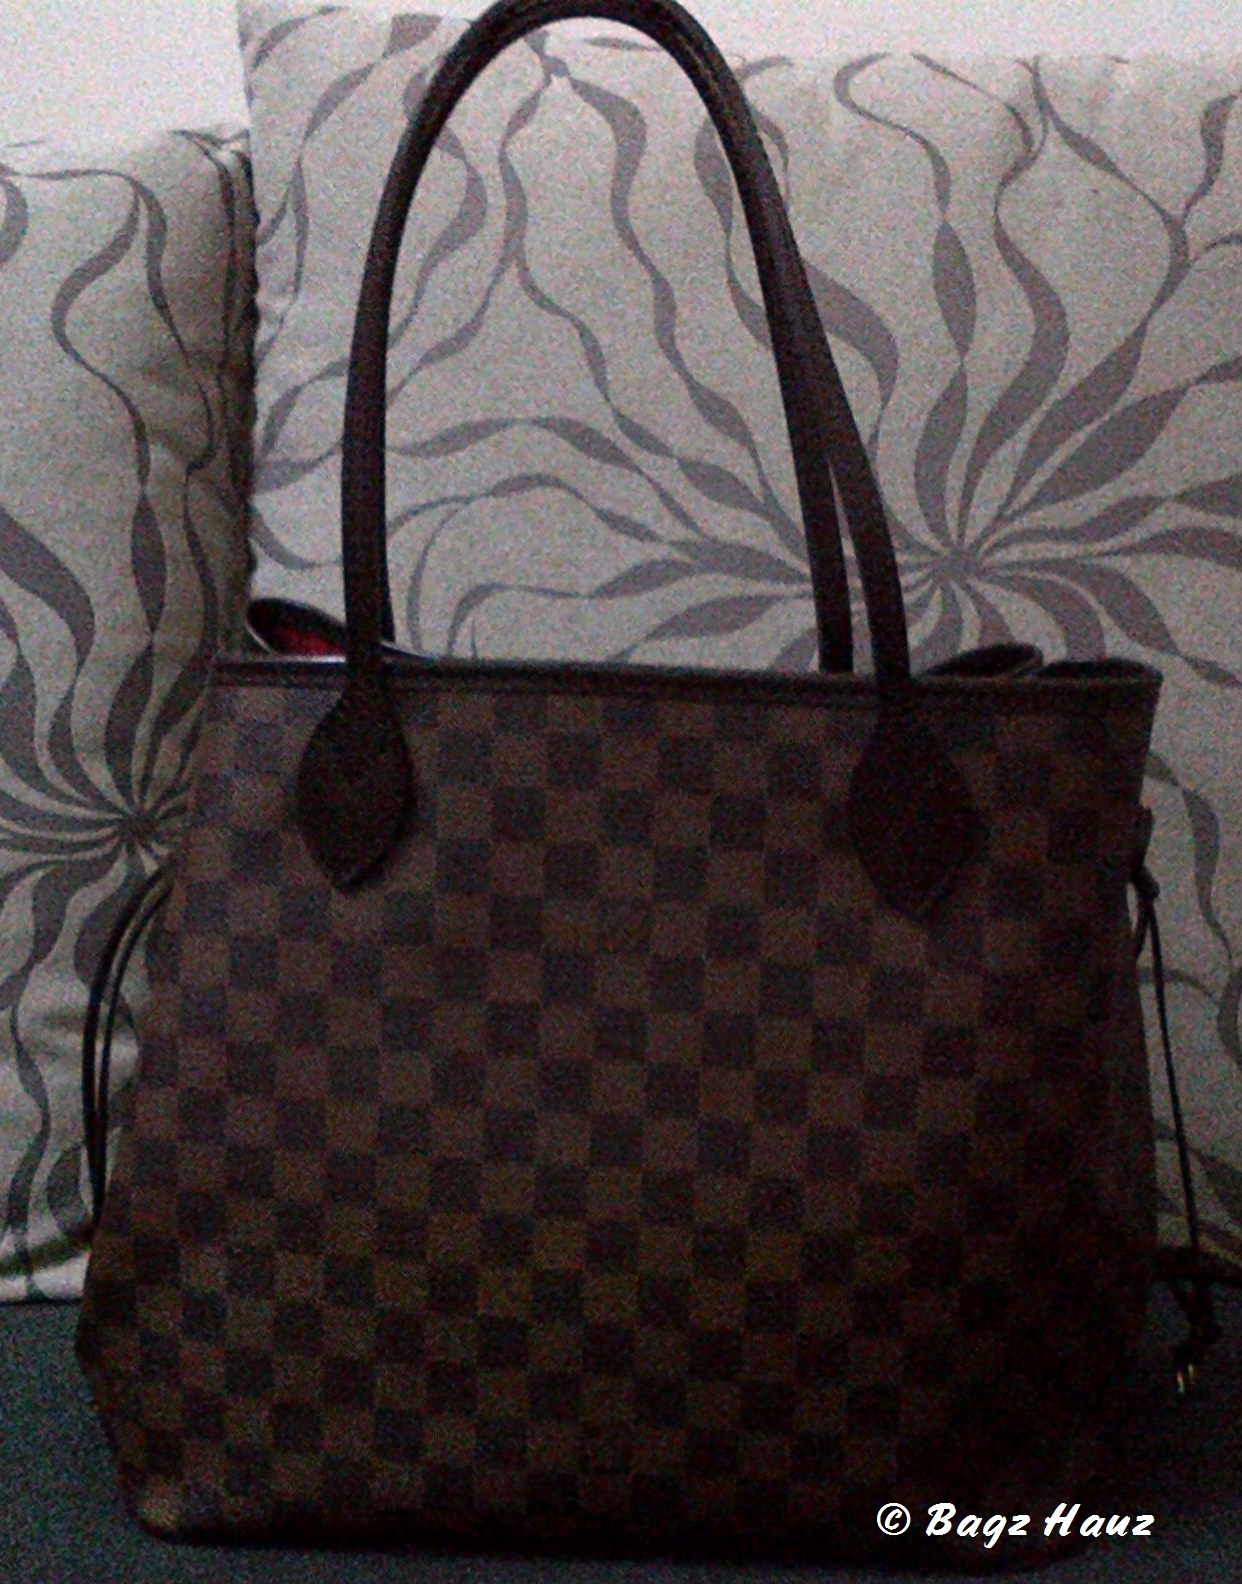 Actual pix shot of the preloved LOUIS VUITTON Neverfull MM in Damier Ebene 1467722334